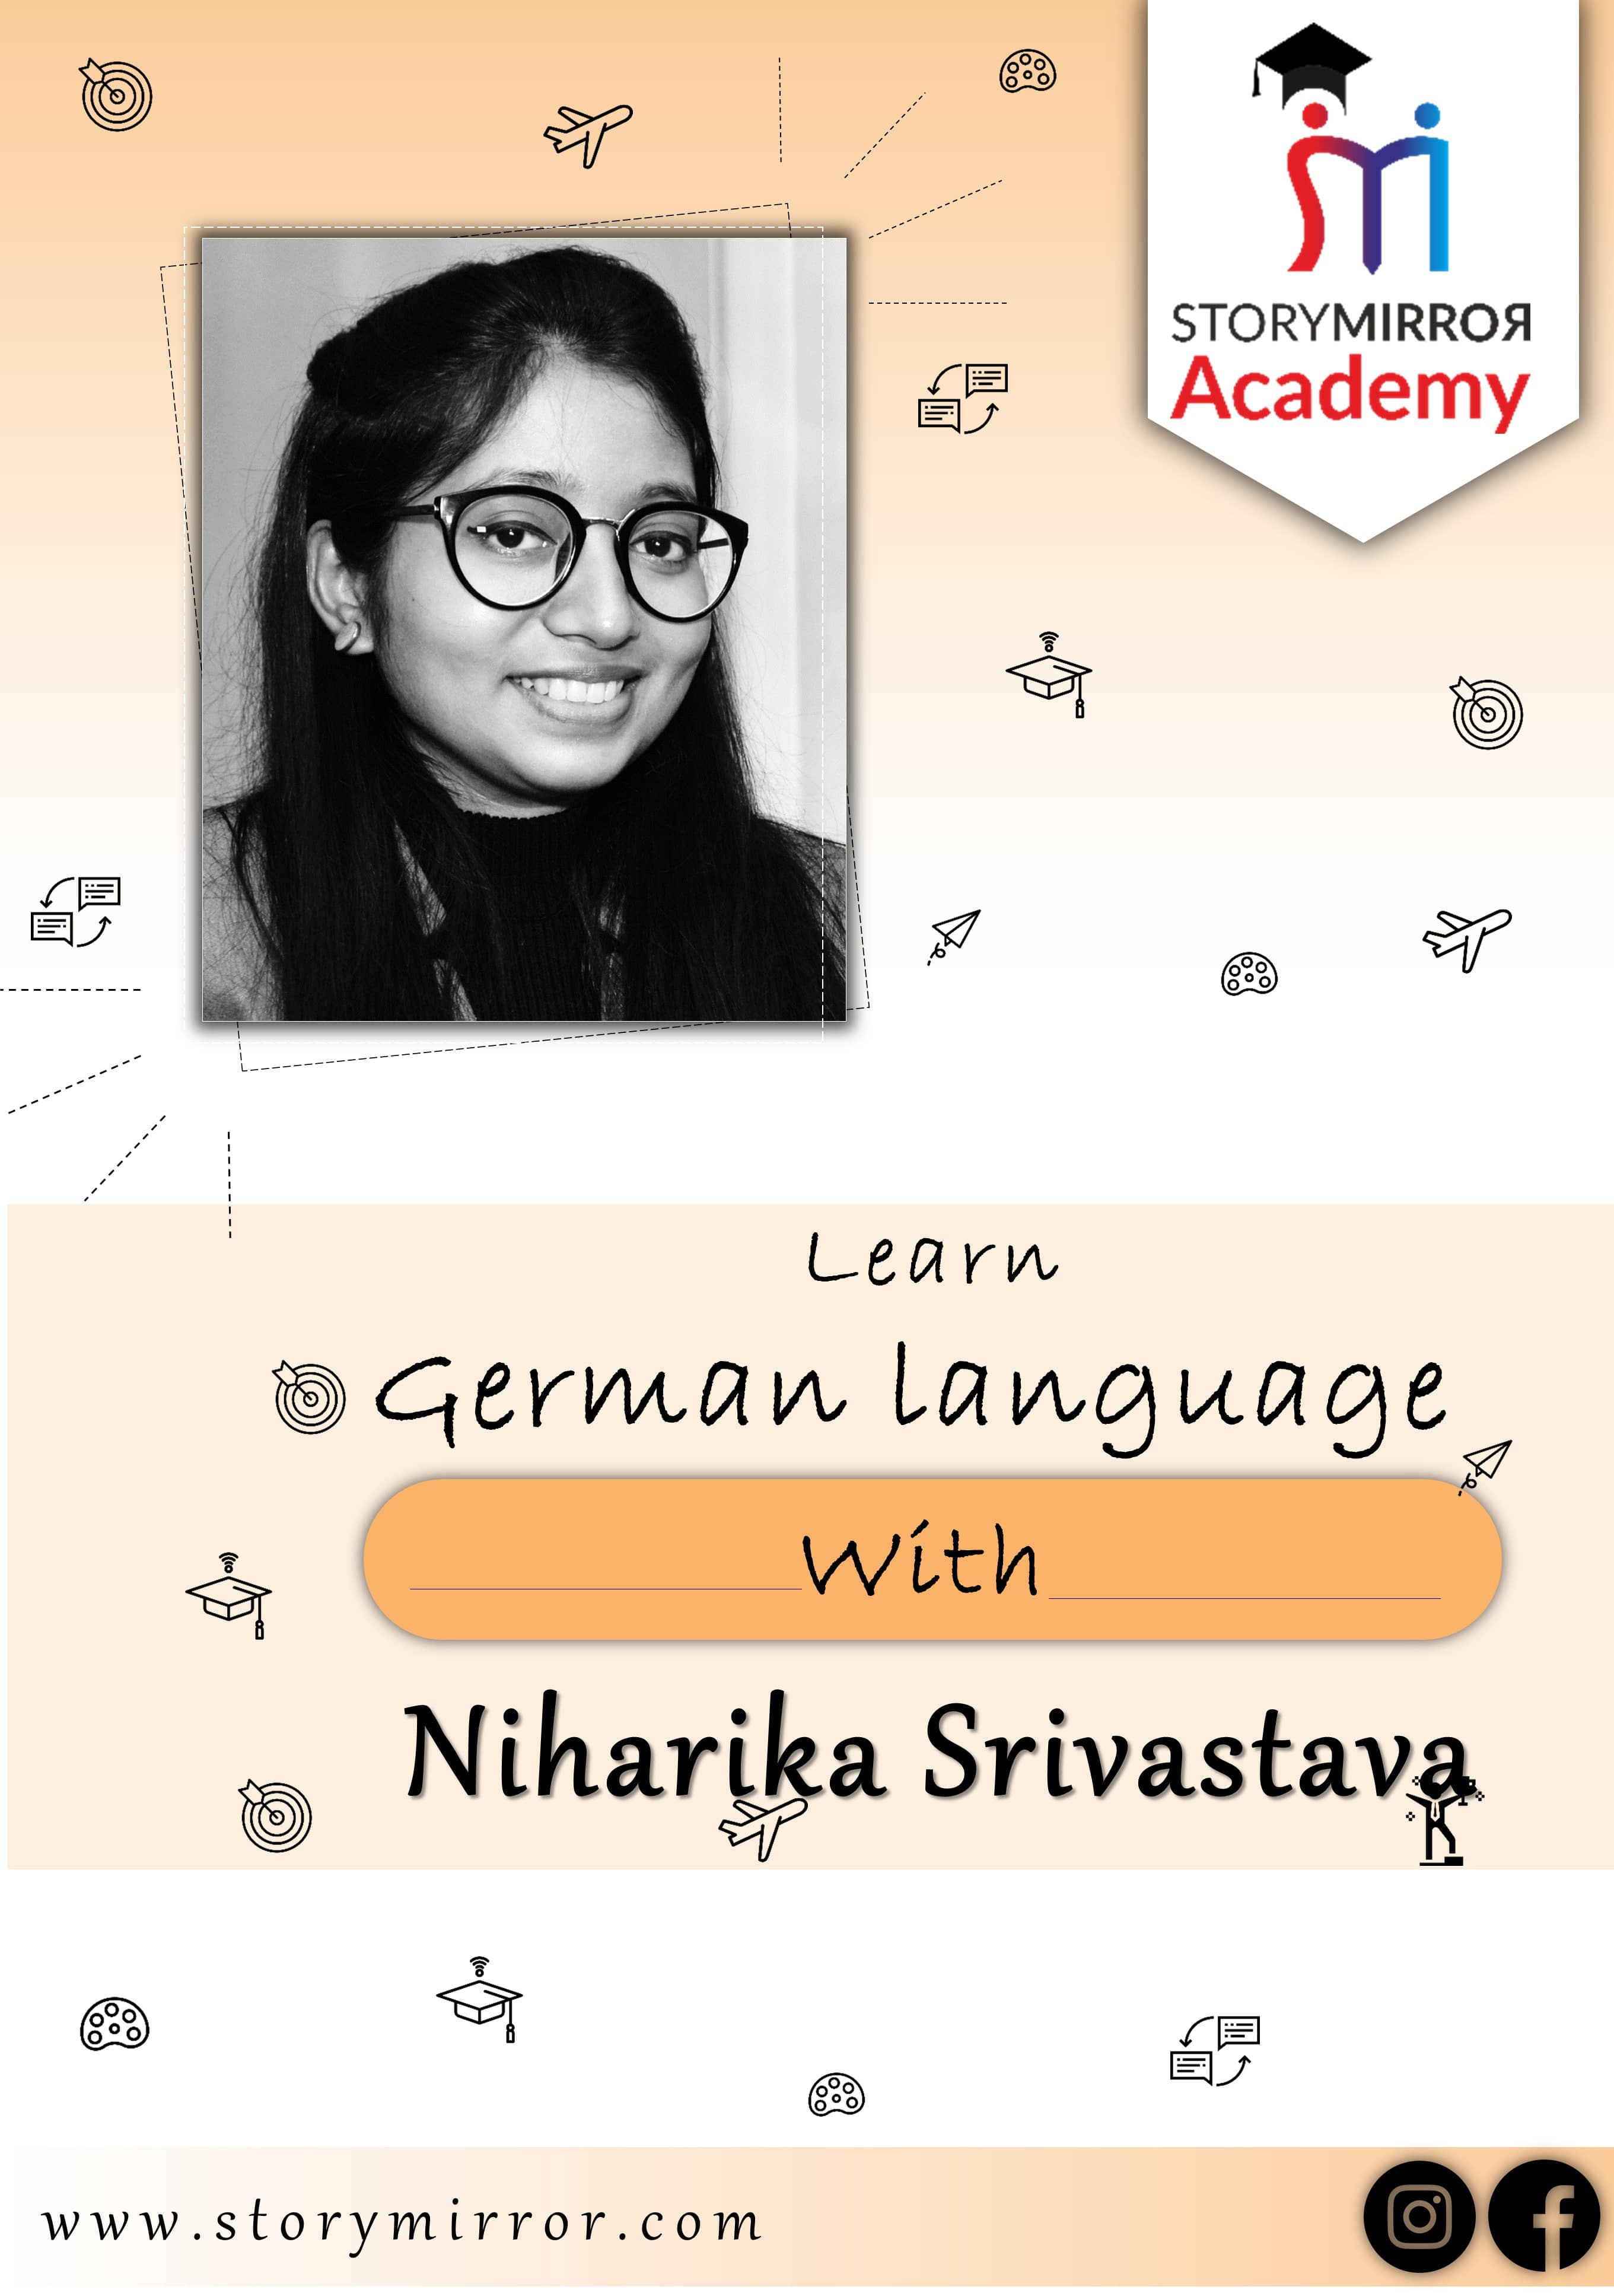 Learn German Language with Niharika Srivastava